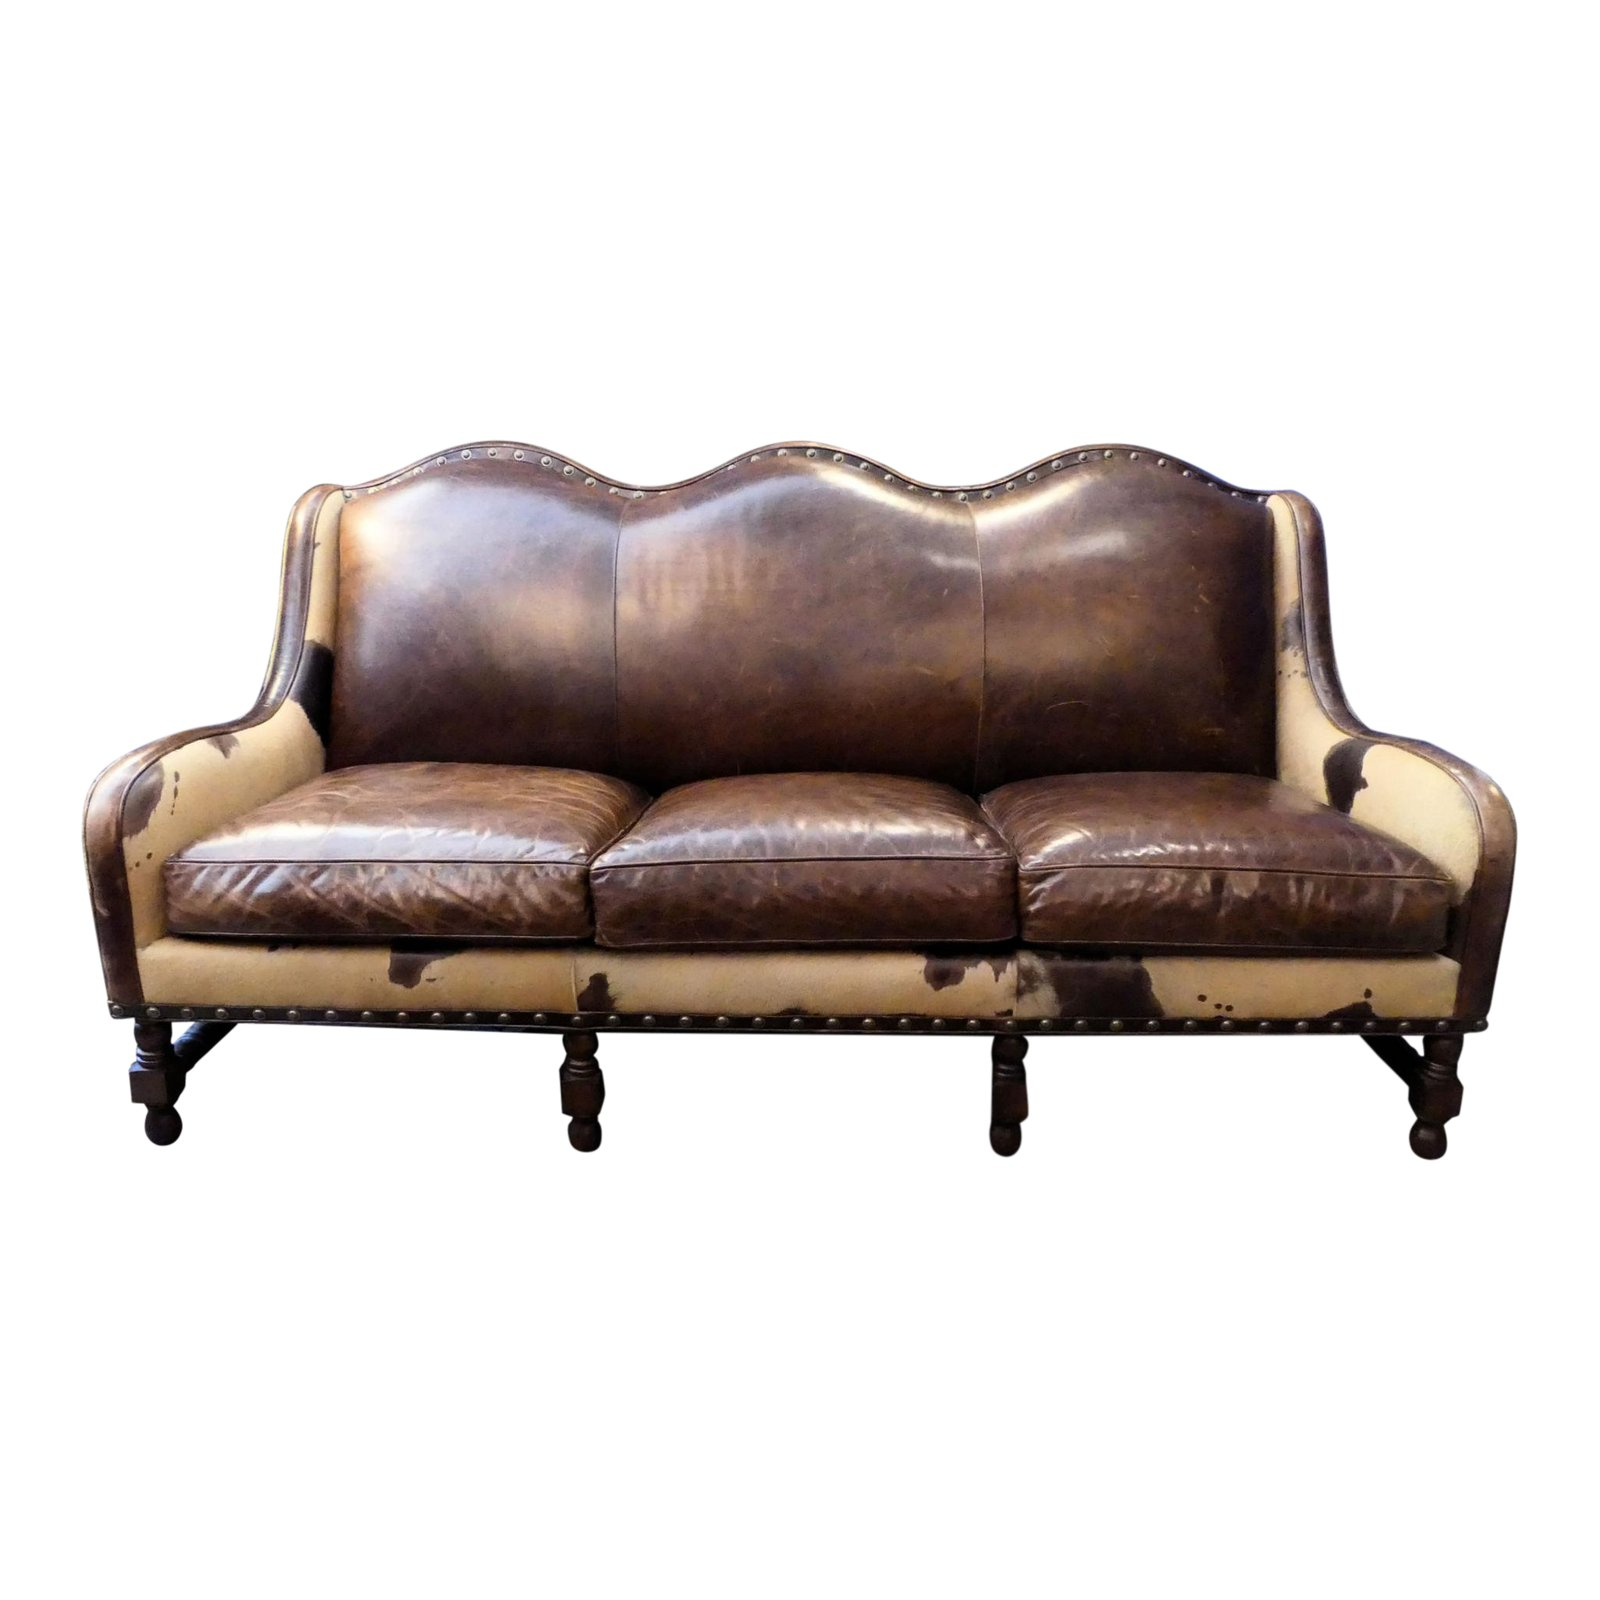 SOLD Hancock and Moore Rustic Leather and Hair-On Hide Sofa